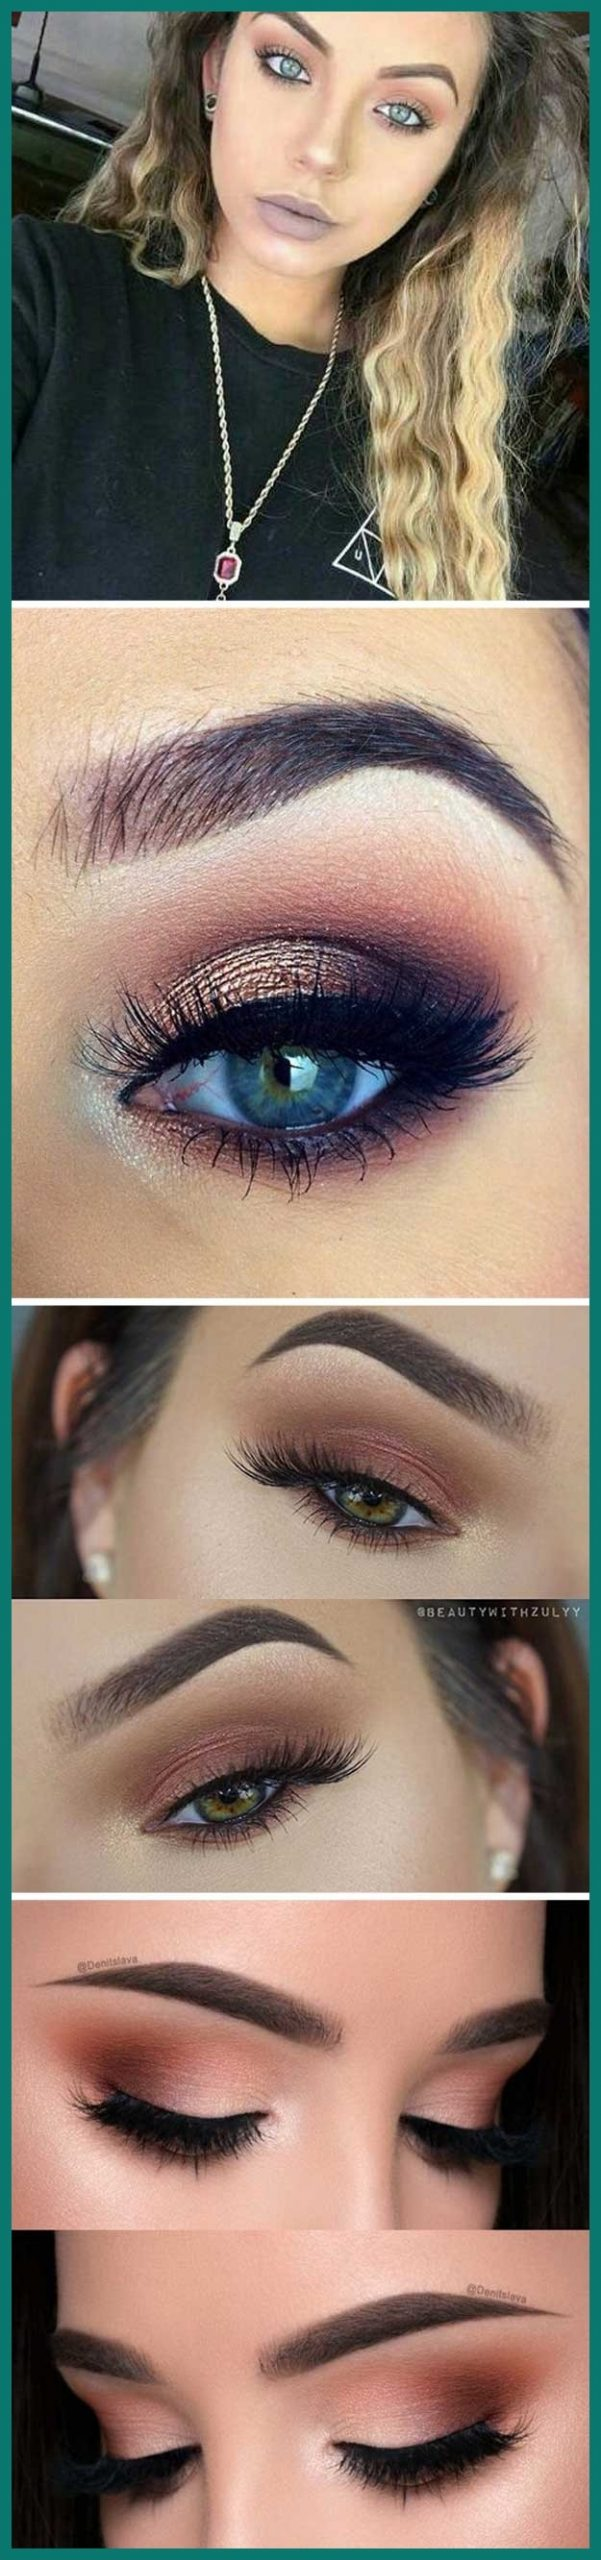 Best Eyeshadow Colors For Blue Eyes And Brown Hair 534226 for Best Eyeshadow Colors For Blue Eyes And Brown Hair